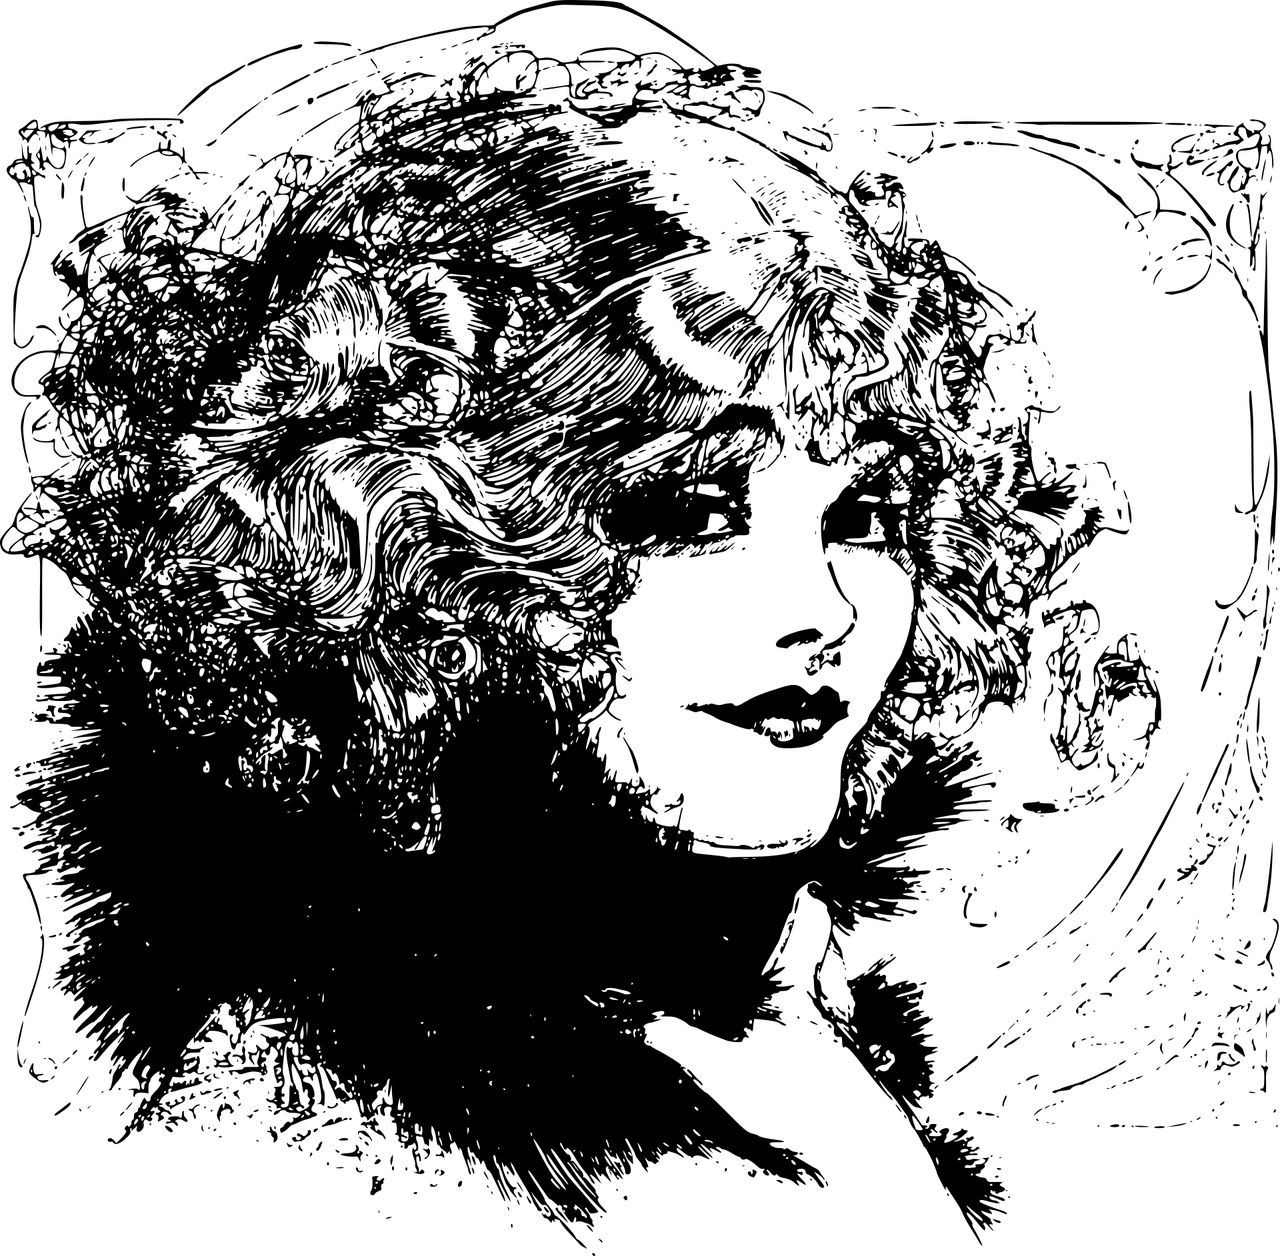 Curls drawing natural hair. Best tips for girls